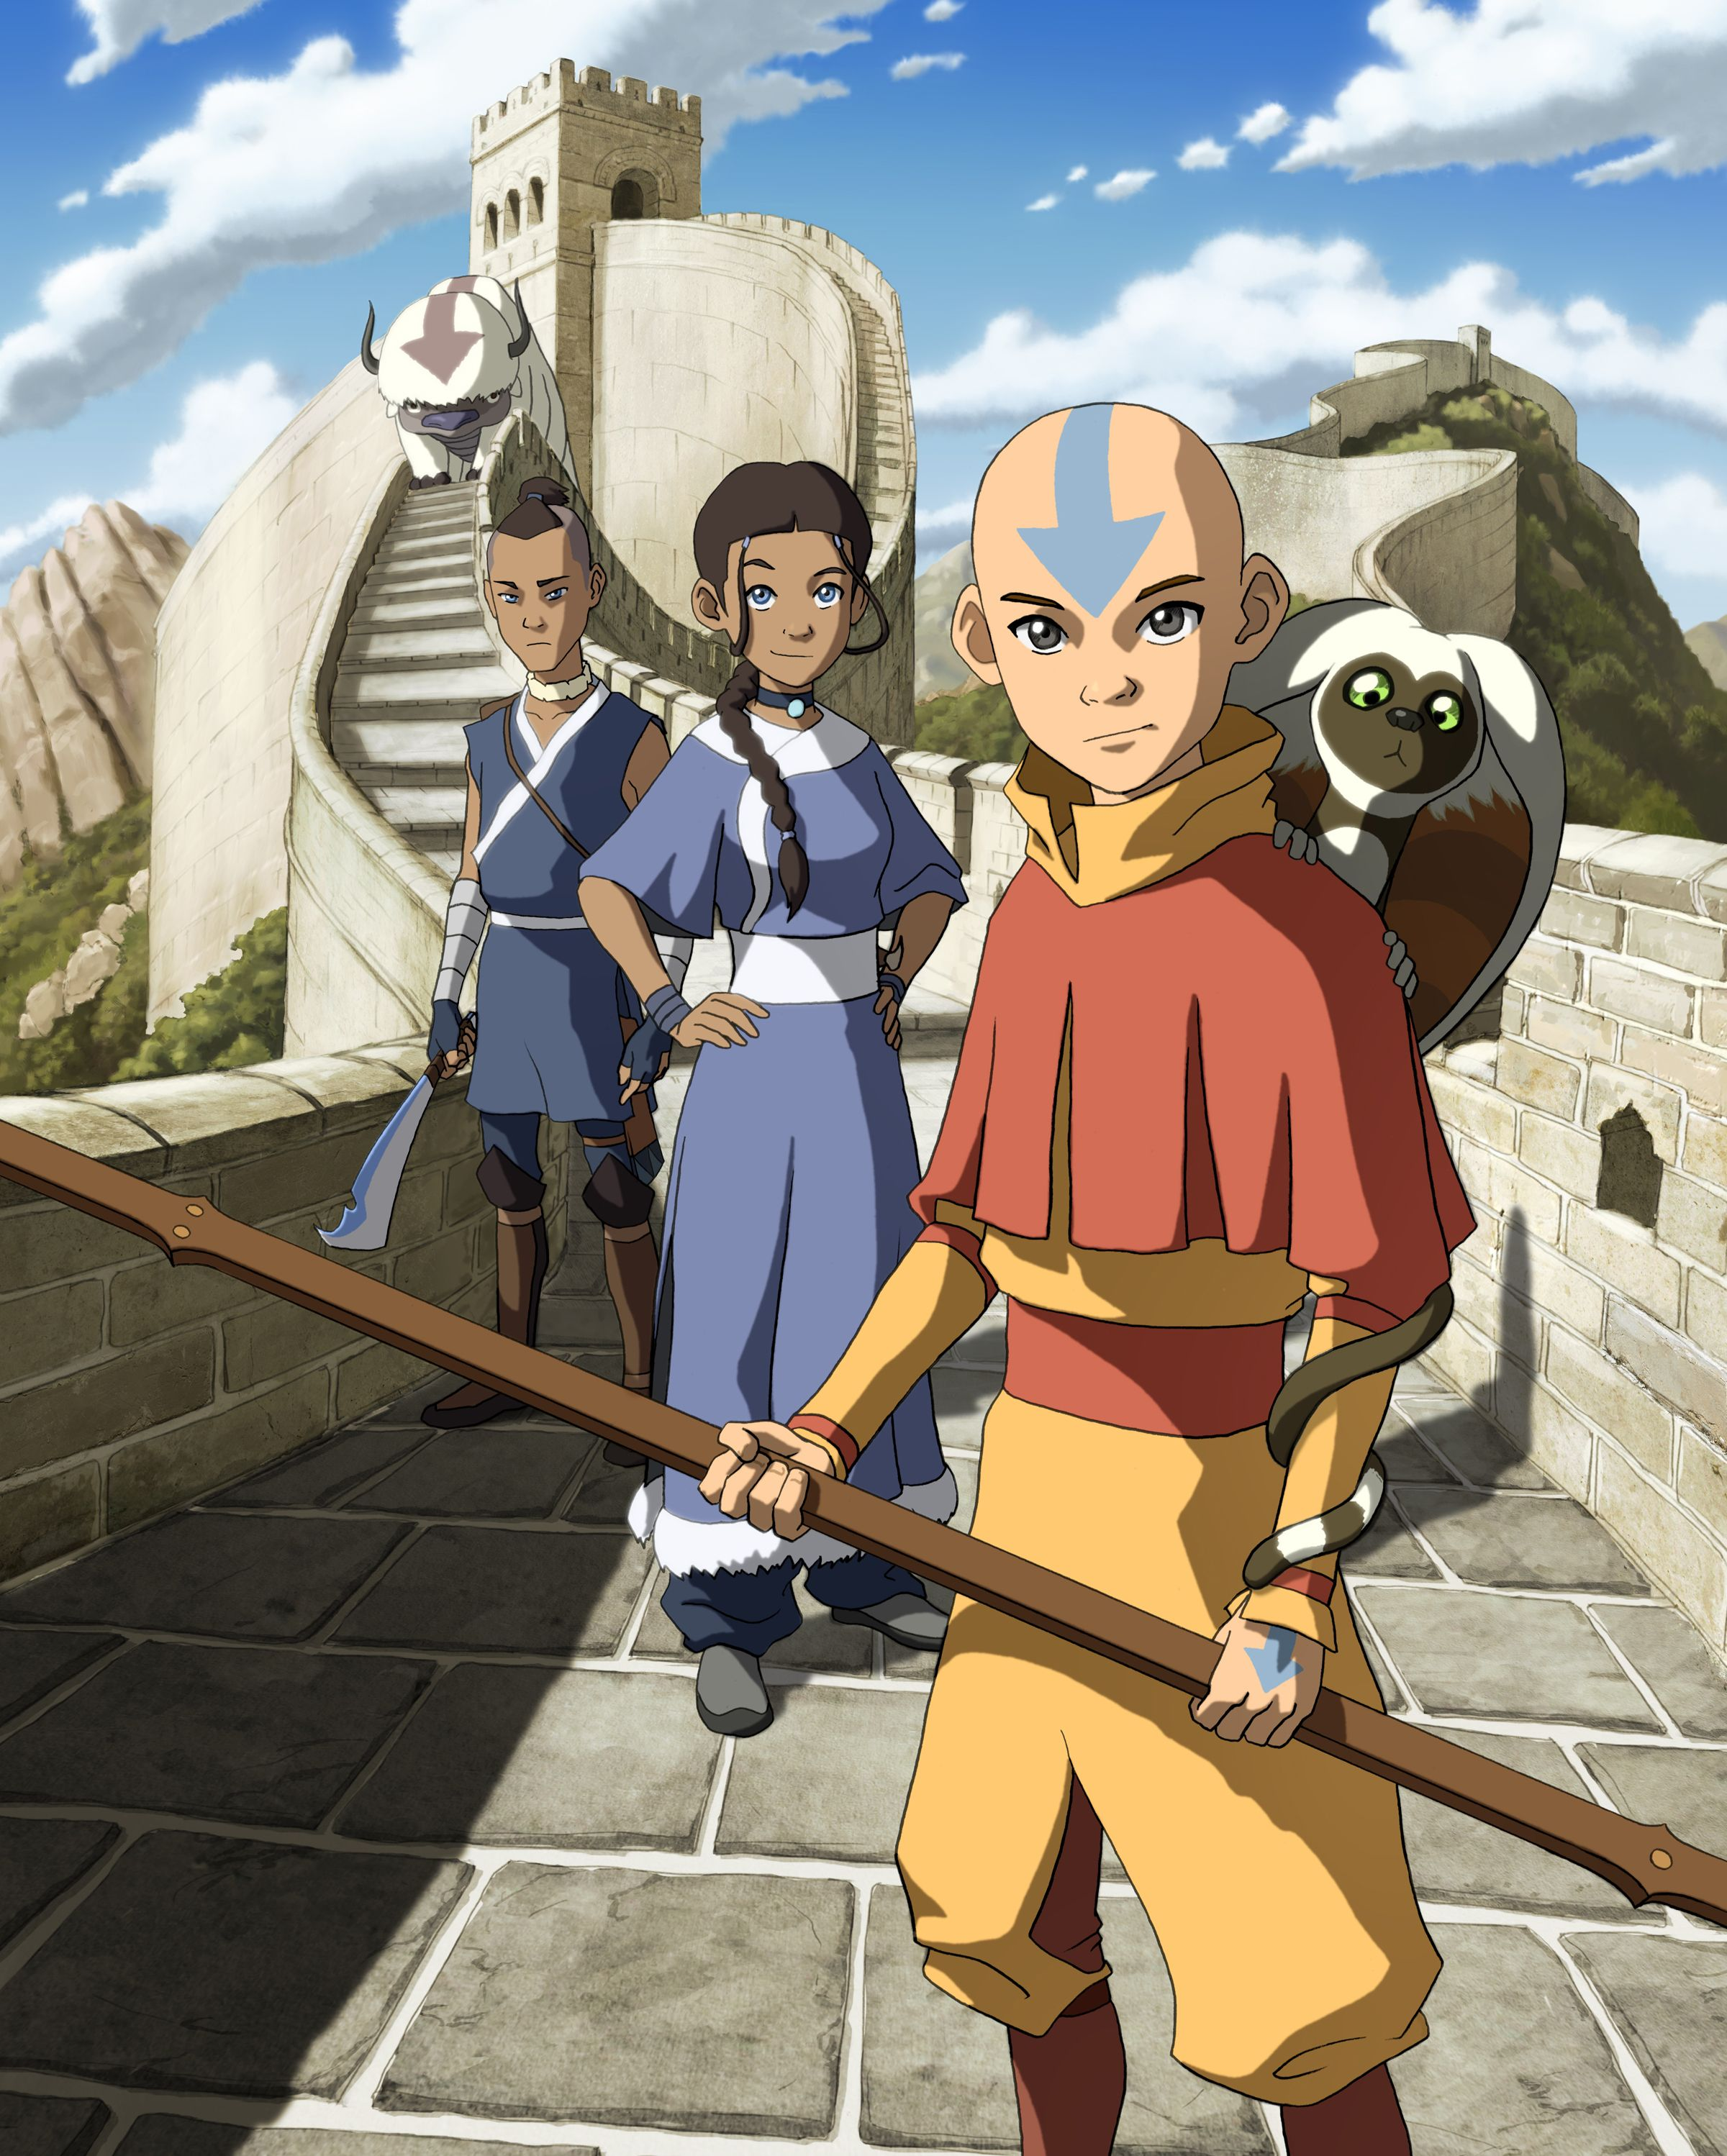 Avatar The Last Airbender Nickelodeon : avatar, airbender, nickelodeon, Filling, 'Avatar'-shaped, Heart, Spokesman-Review